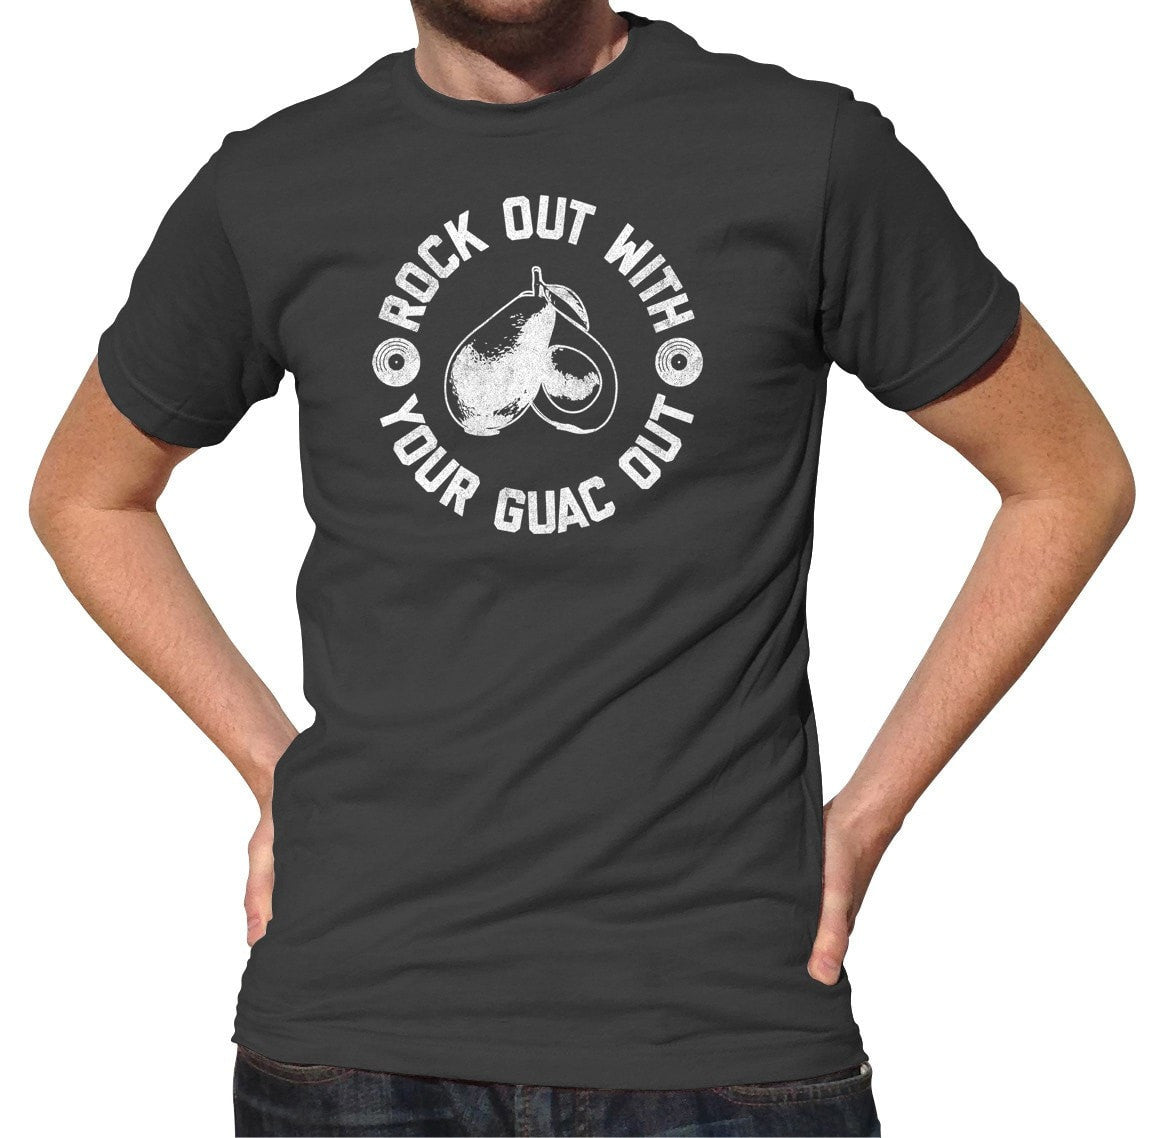 Men's Rock Out With Your Guac Out Guacamole T-Shirt